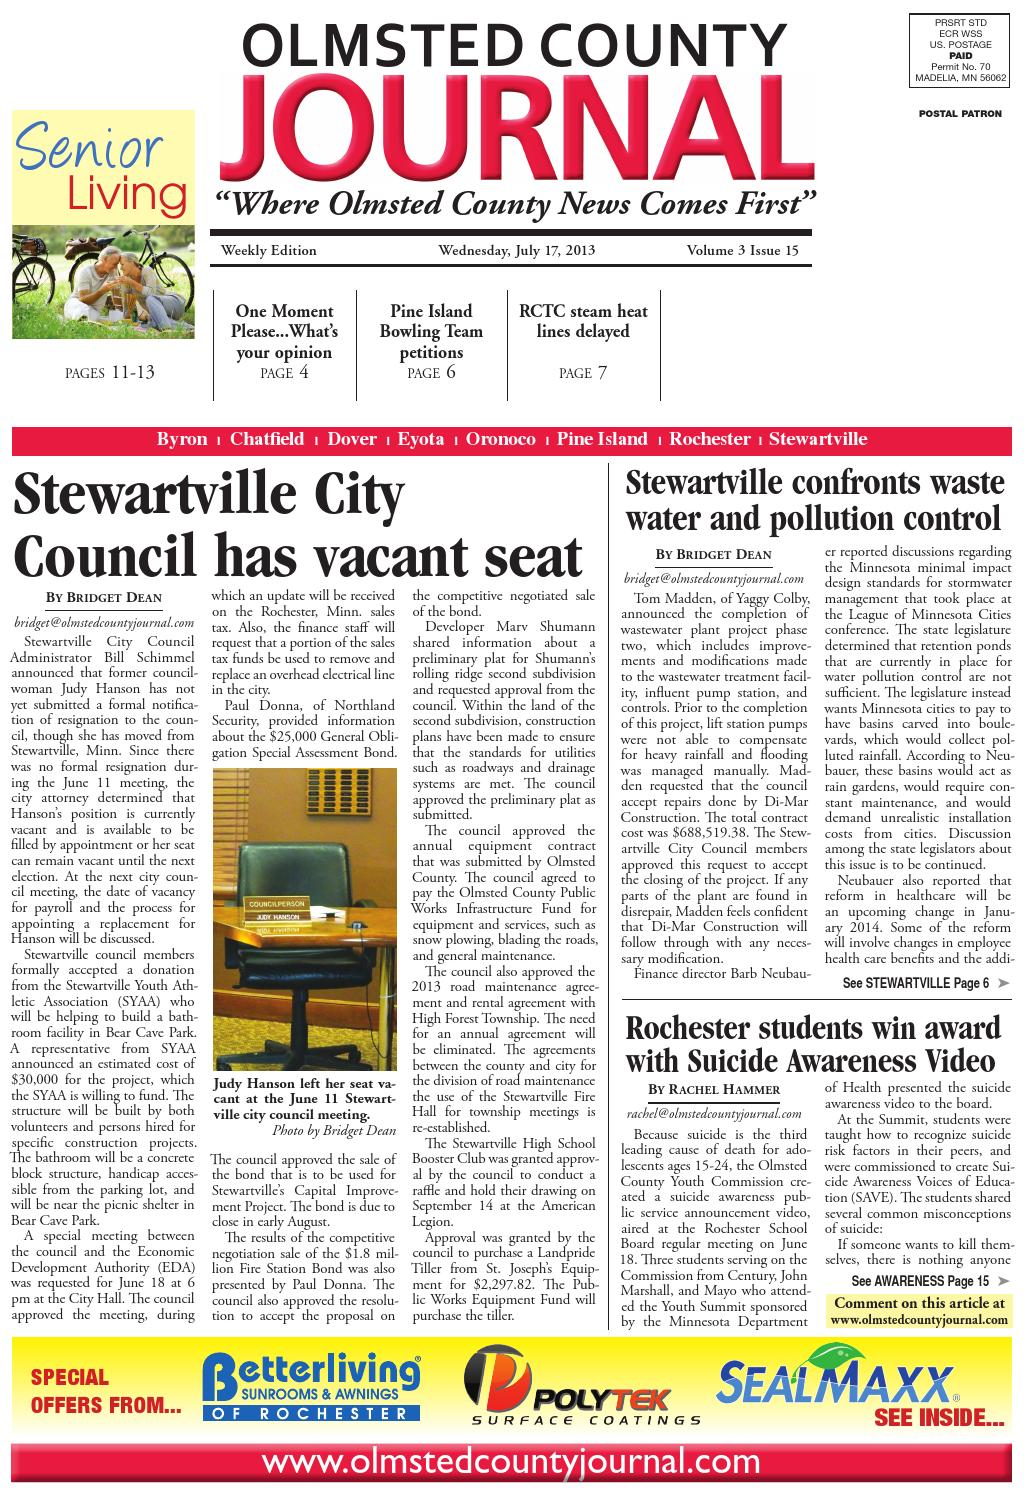 Olmsted County Journal 7 17 13 by Jason Sethre - issuu